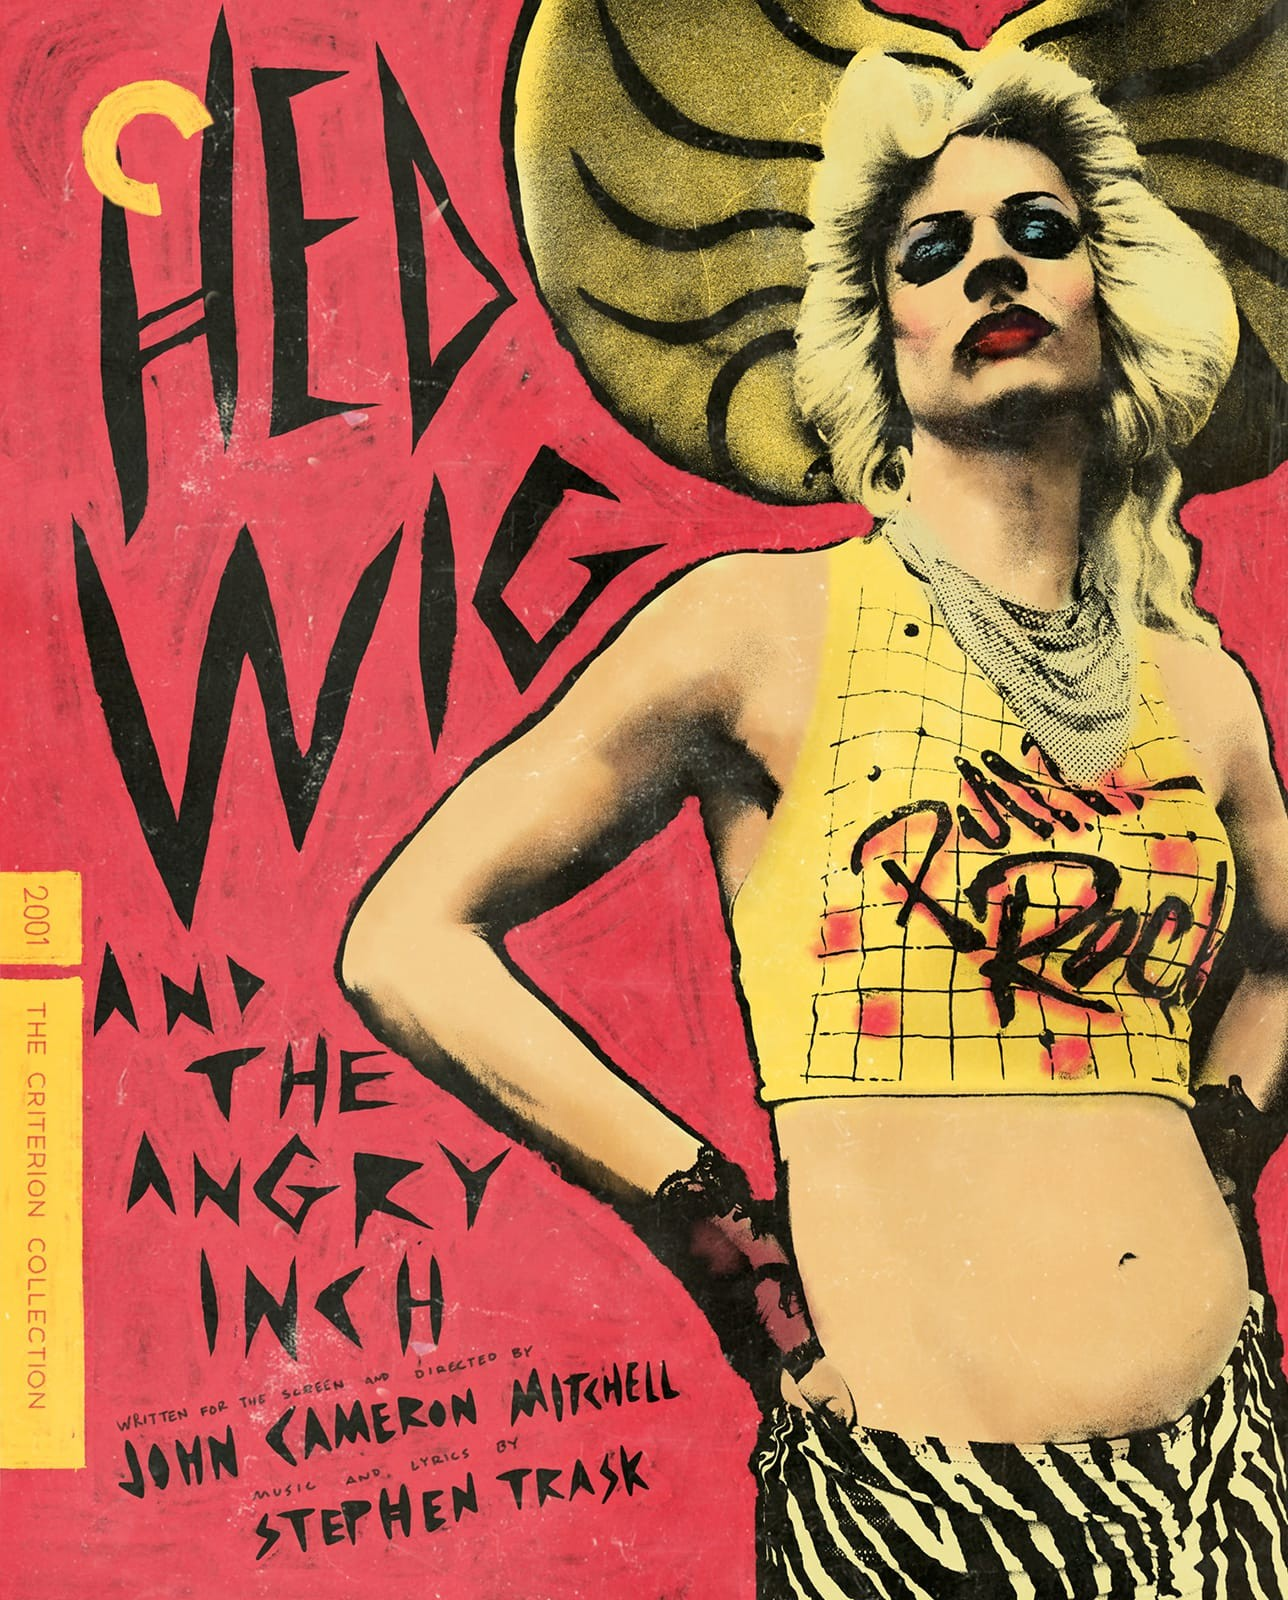 Hedwig and the Angry Inch Criterion